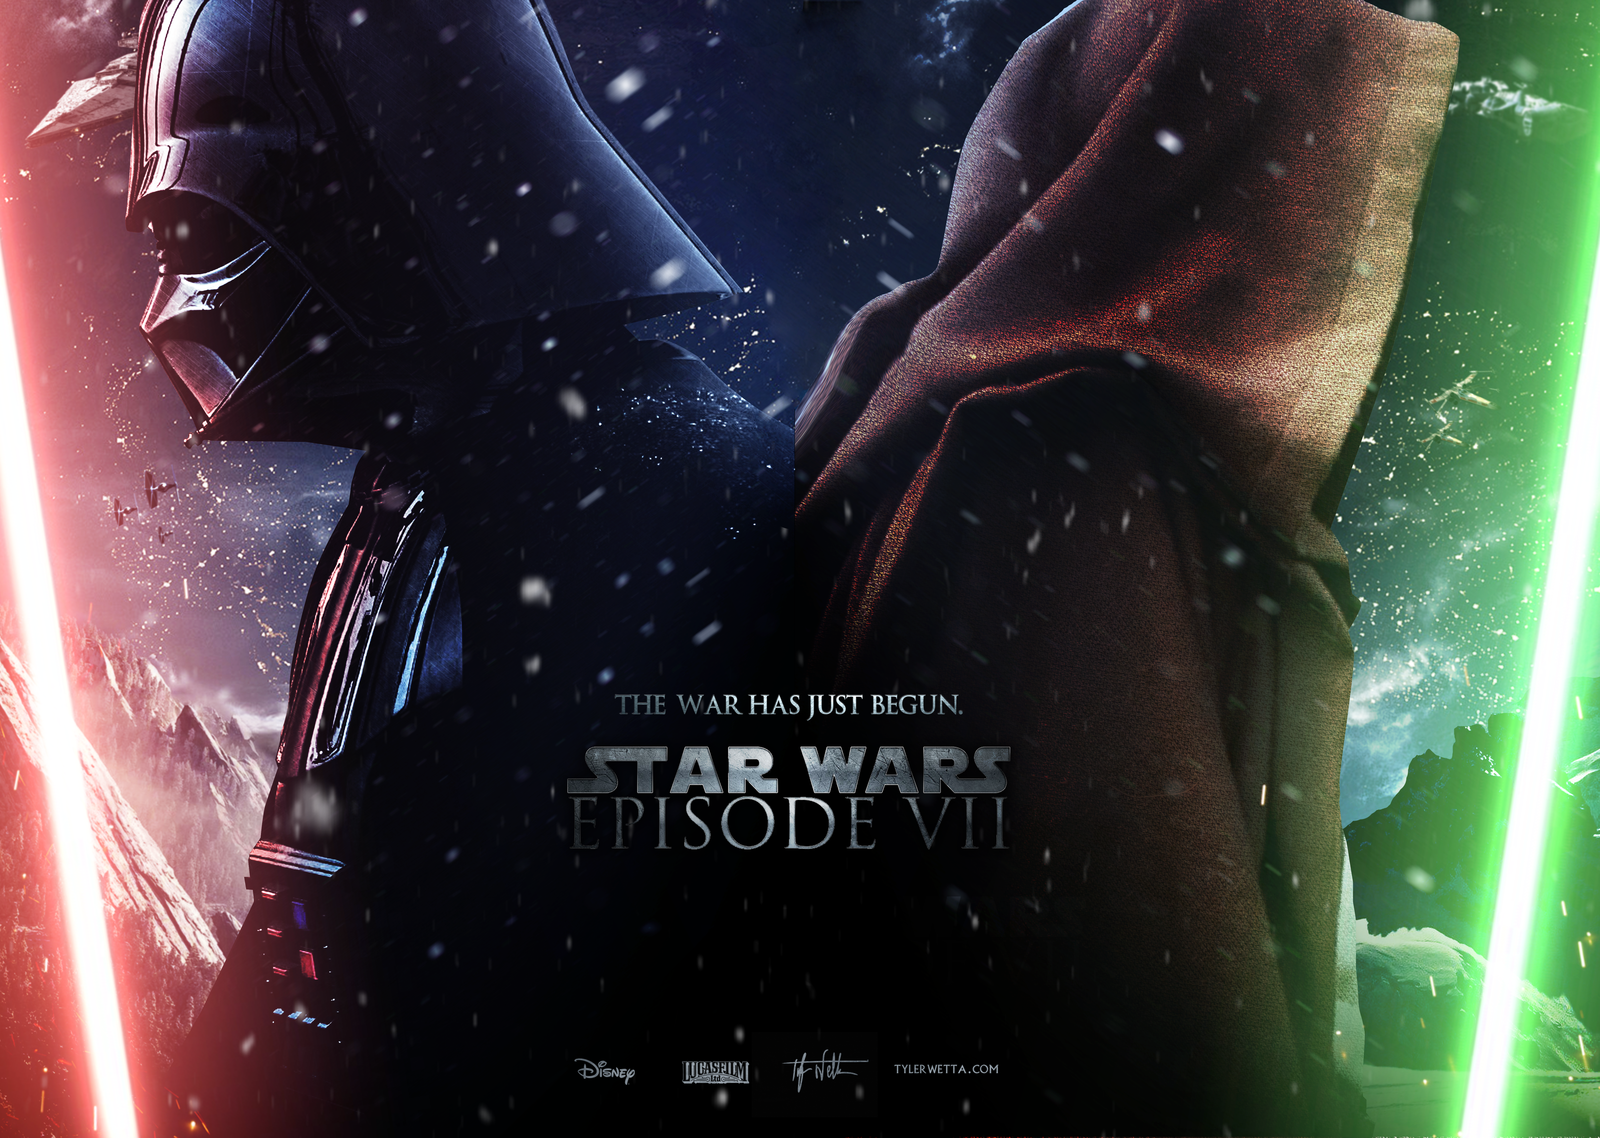 star wars episode vii   wallpaper by ancoradesign d74gh8spng 1600x1138